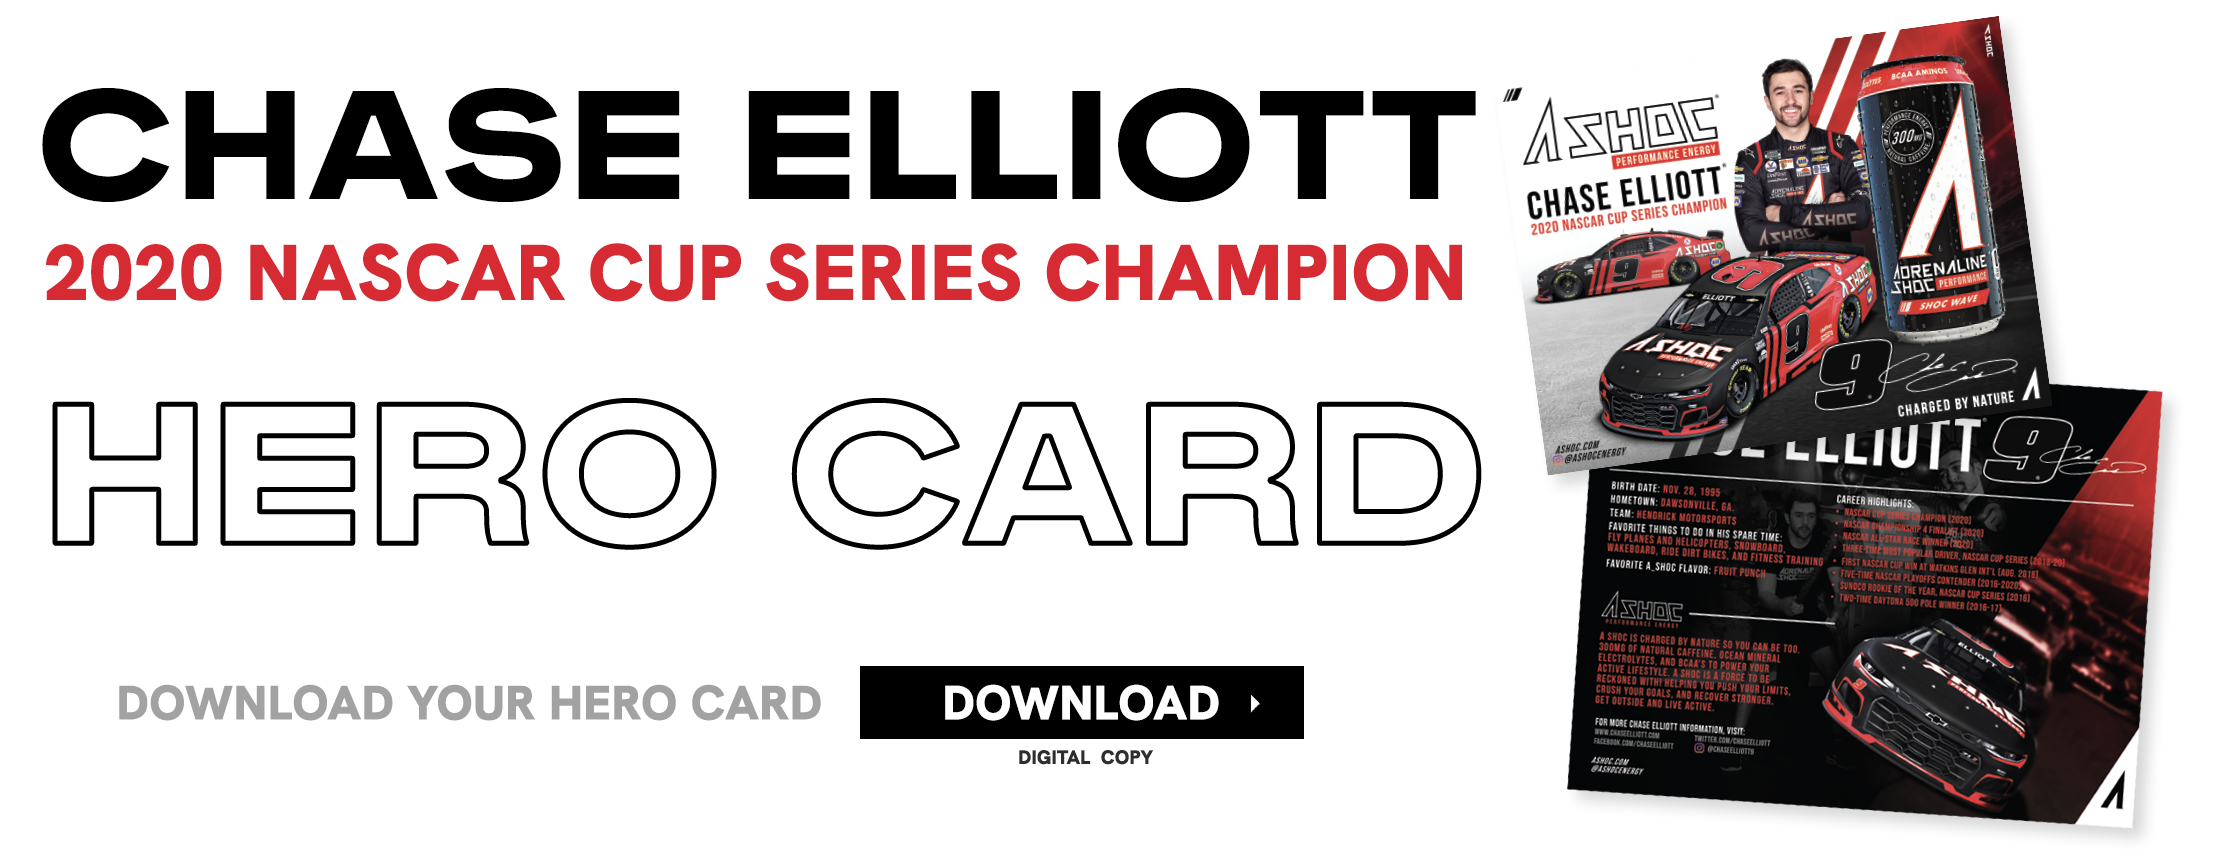 Download your Chase Elliott hero card here